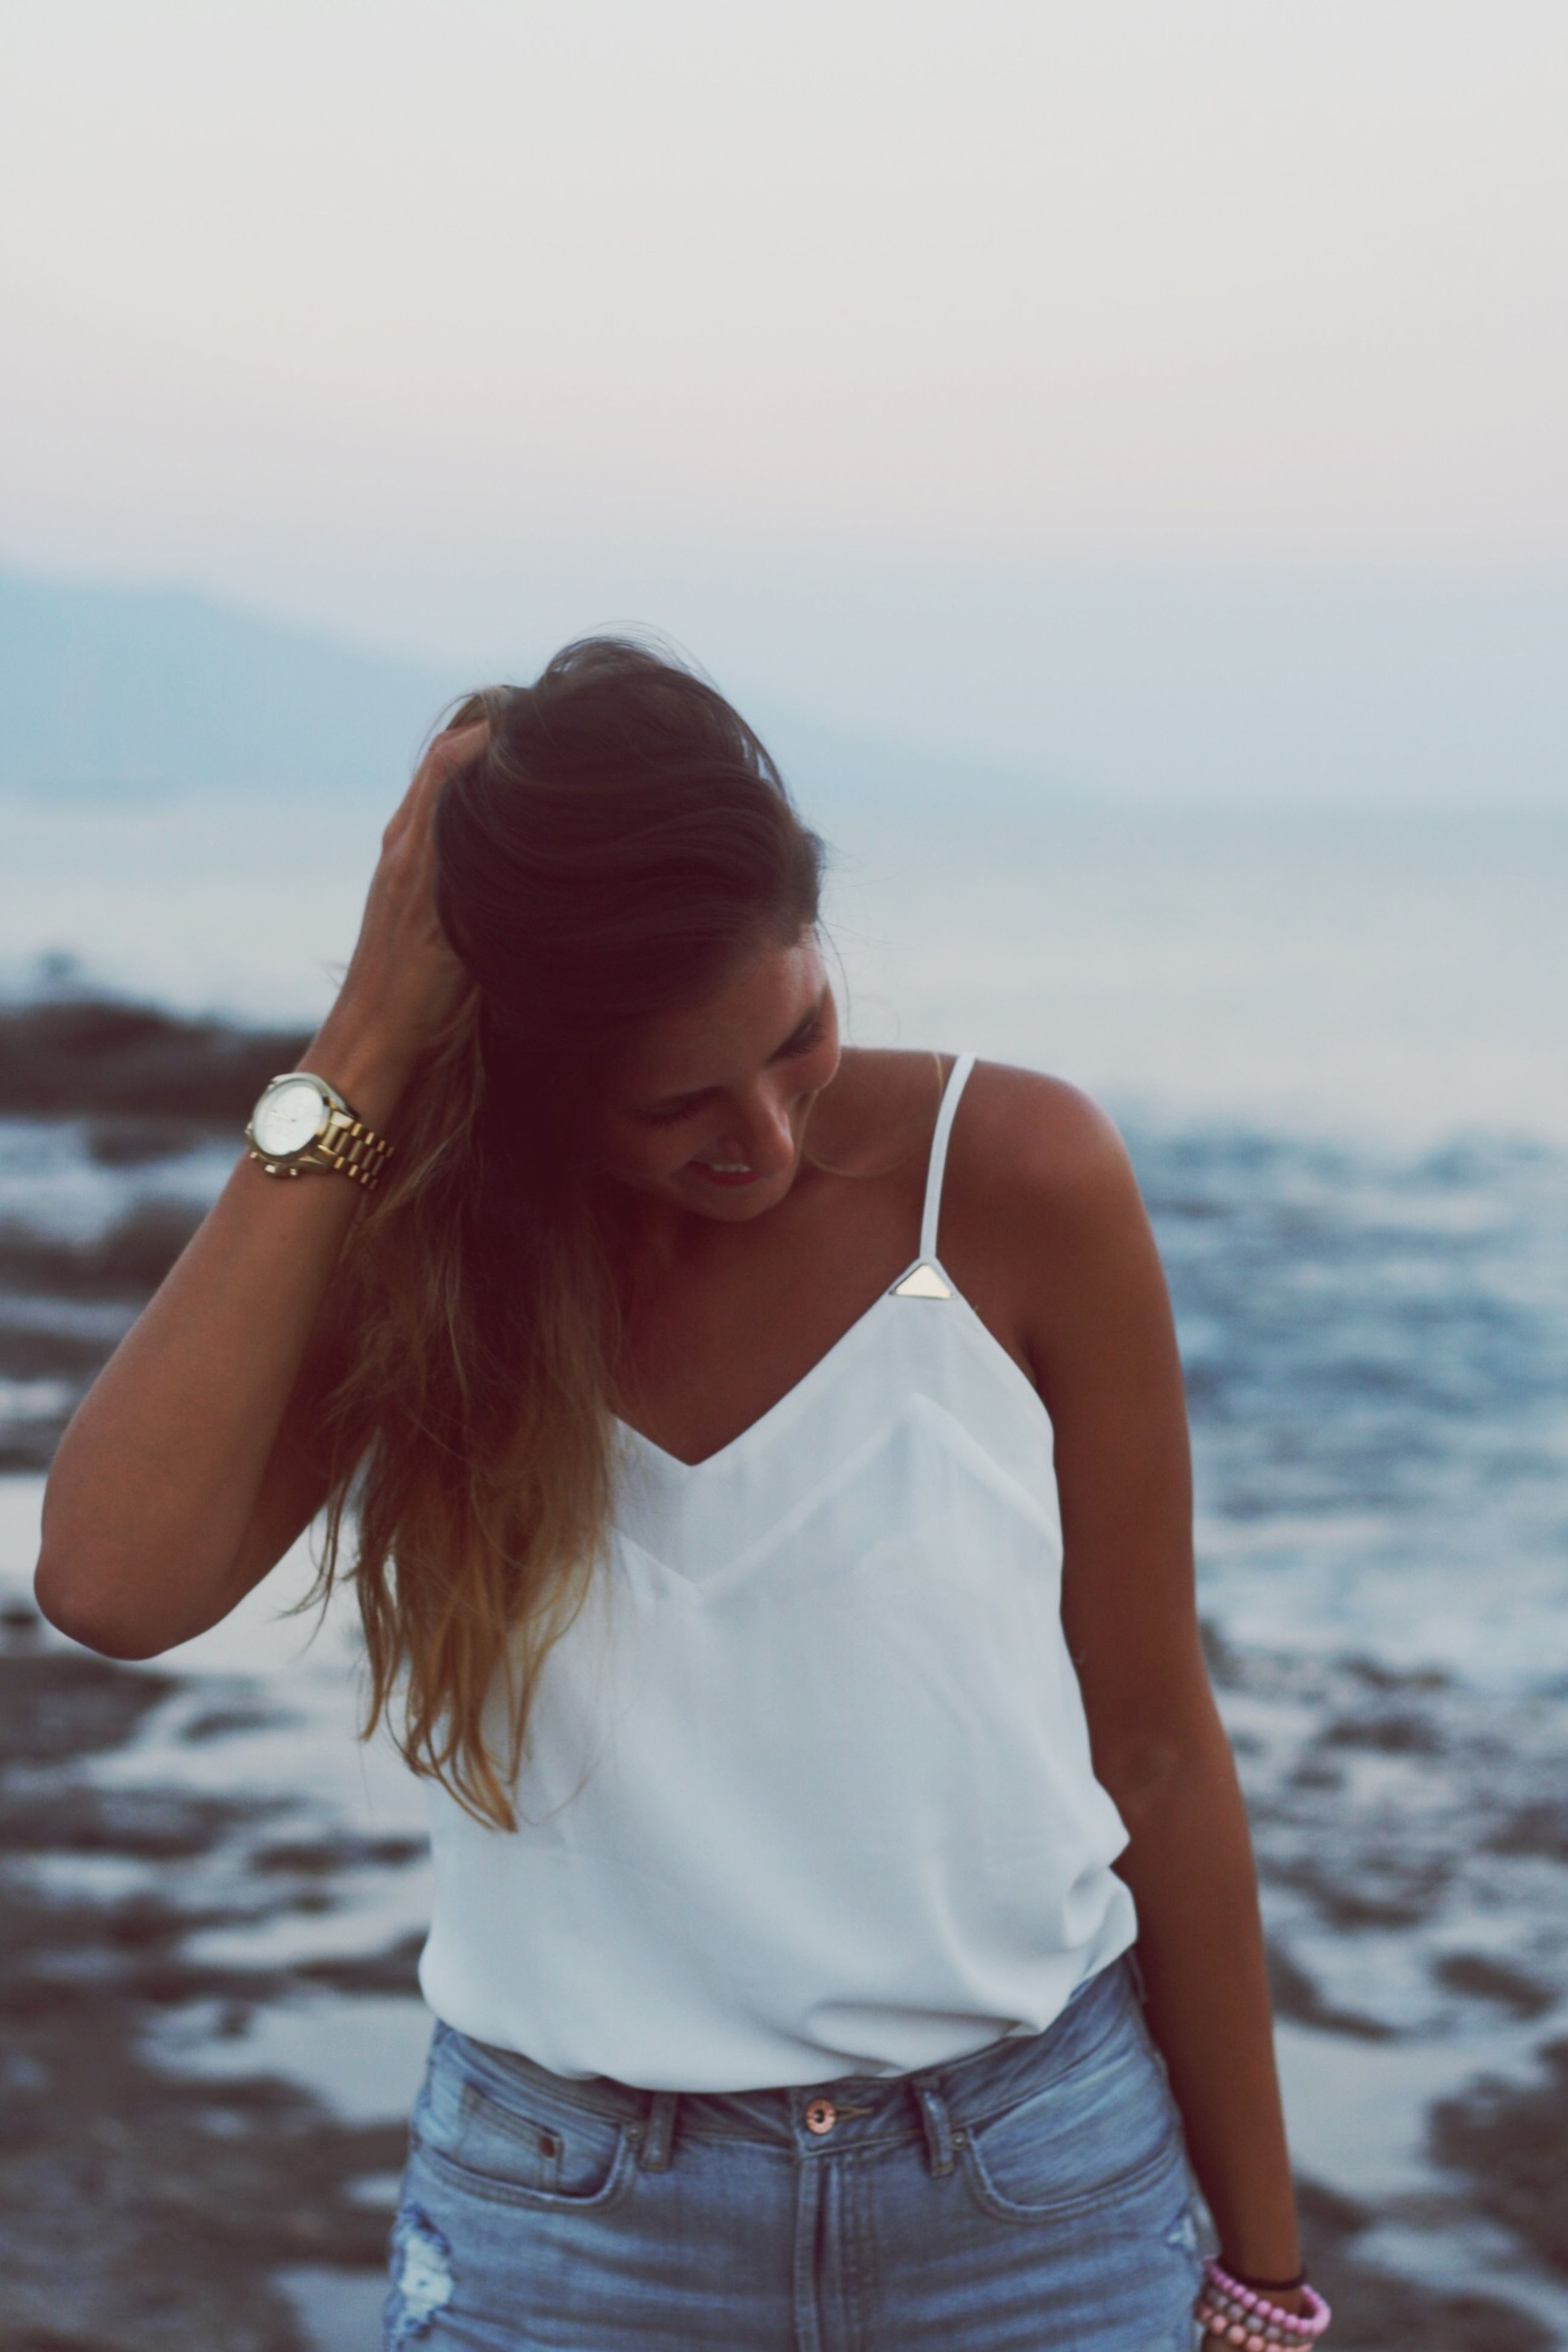 sea, lifestyles, leisure activity, water, young adult, focus on foreground, person, long hair, young women, waist up, beach, casual clothing, headshot, side view, rear view, three quarter length, horizon over water, standing